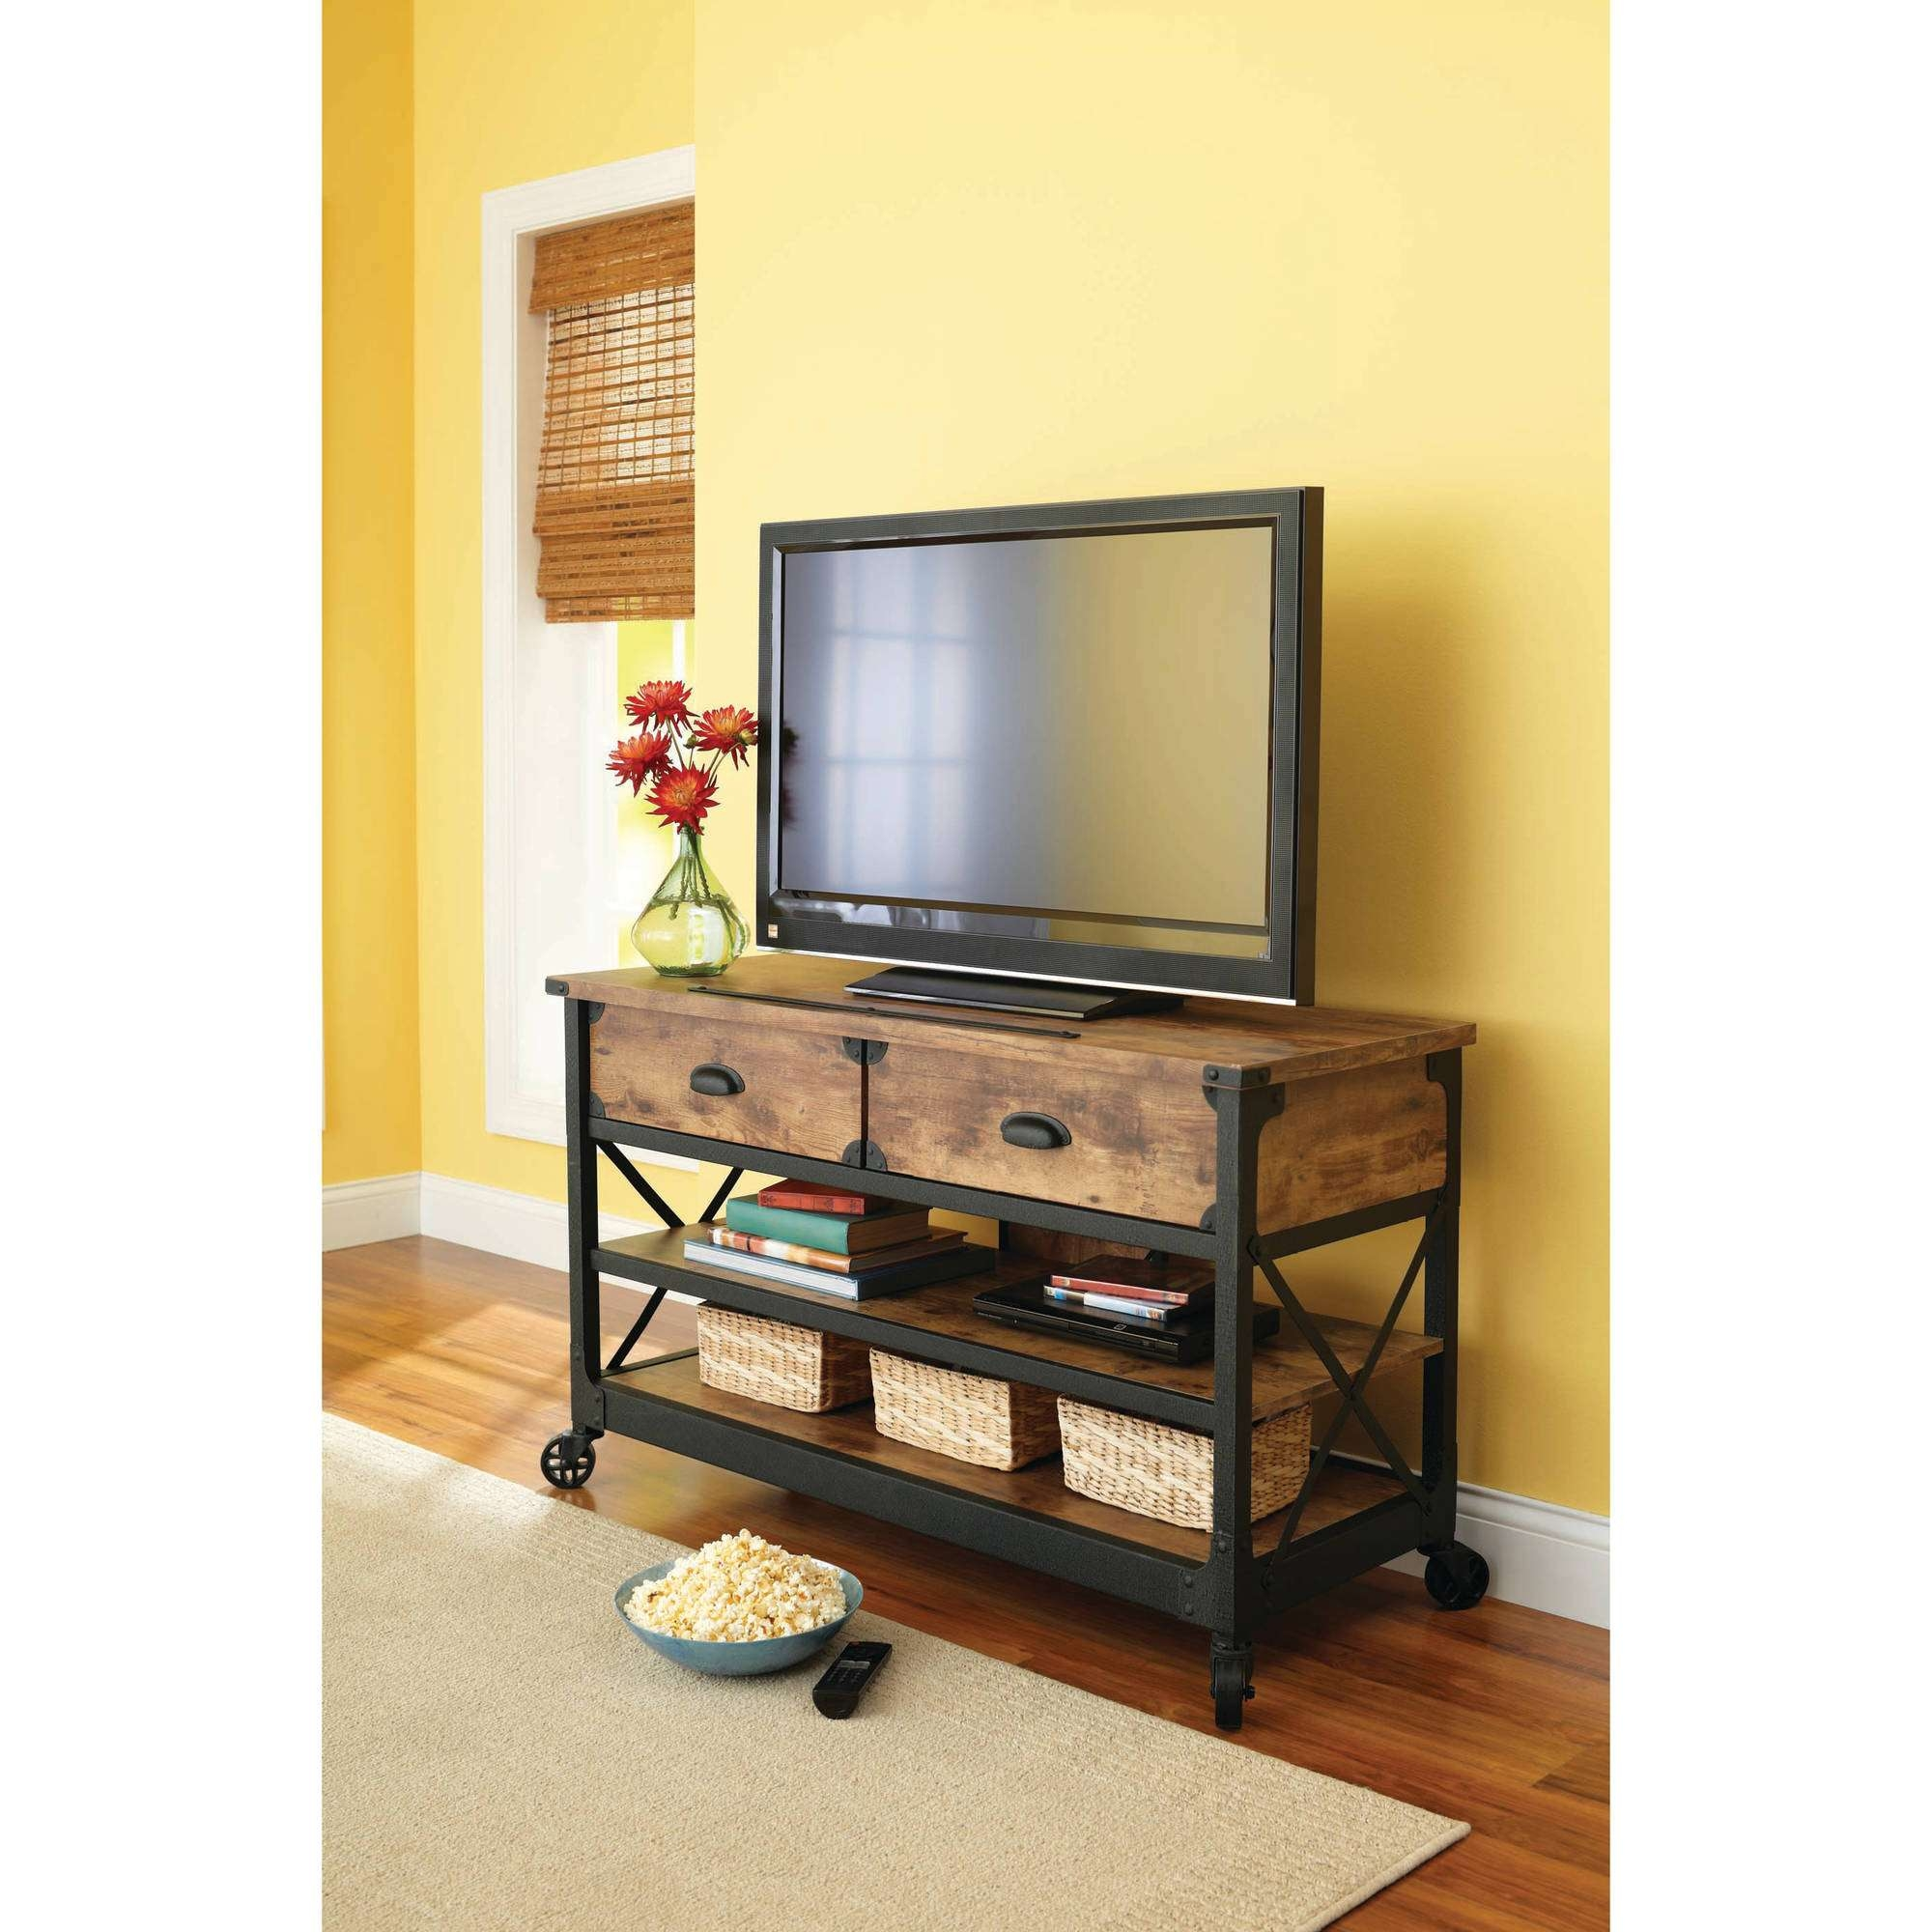 Better Homes And Gardens Rustic Country Living Room Set – Walmart With Tv Stands With Baskets (View 2 of 15)